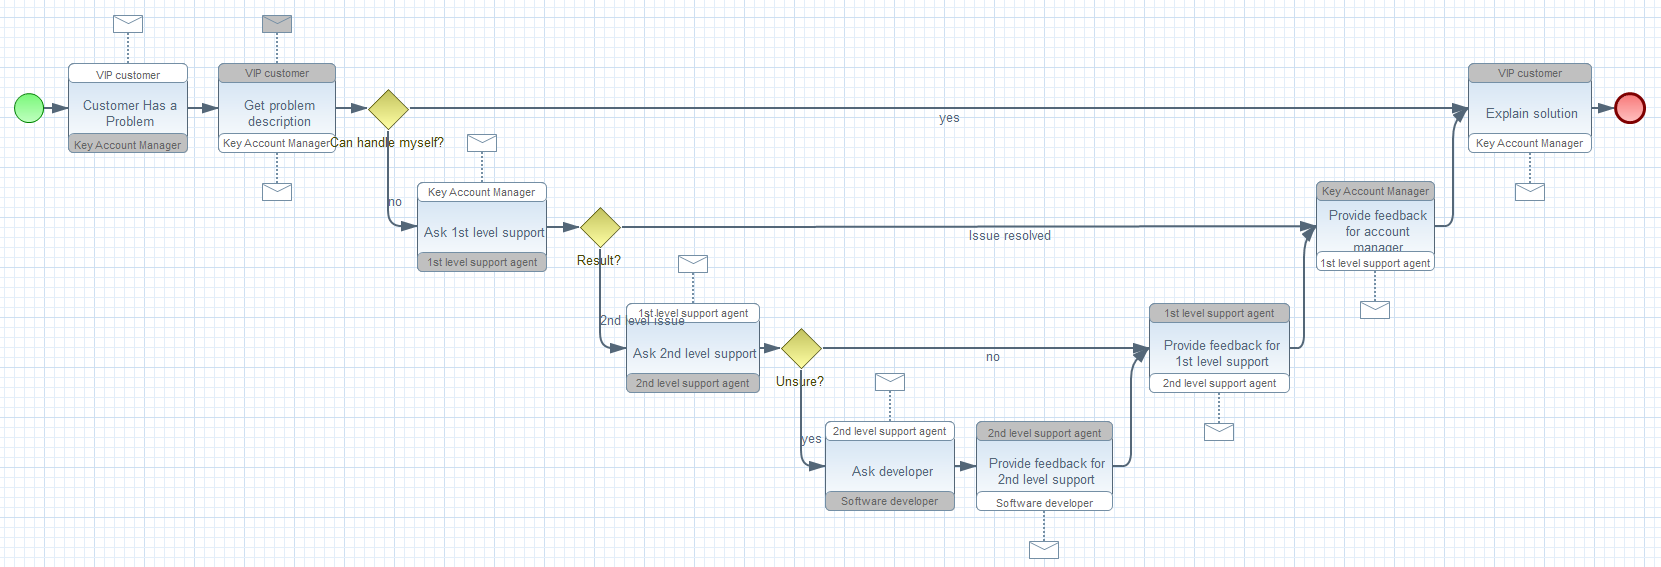 Jboss Tools Bpmn2 Modeler Process Flow Diagram Using Staruml Features Choreography